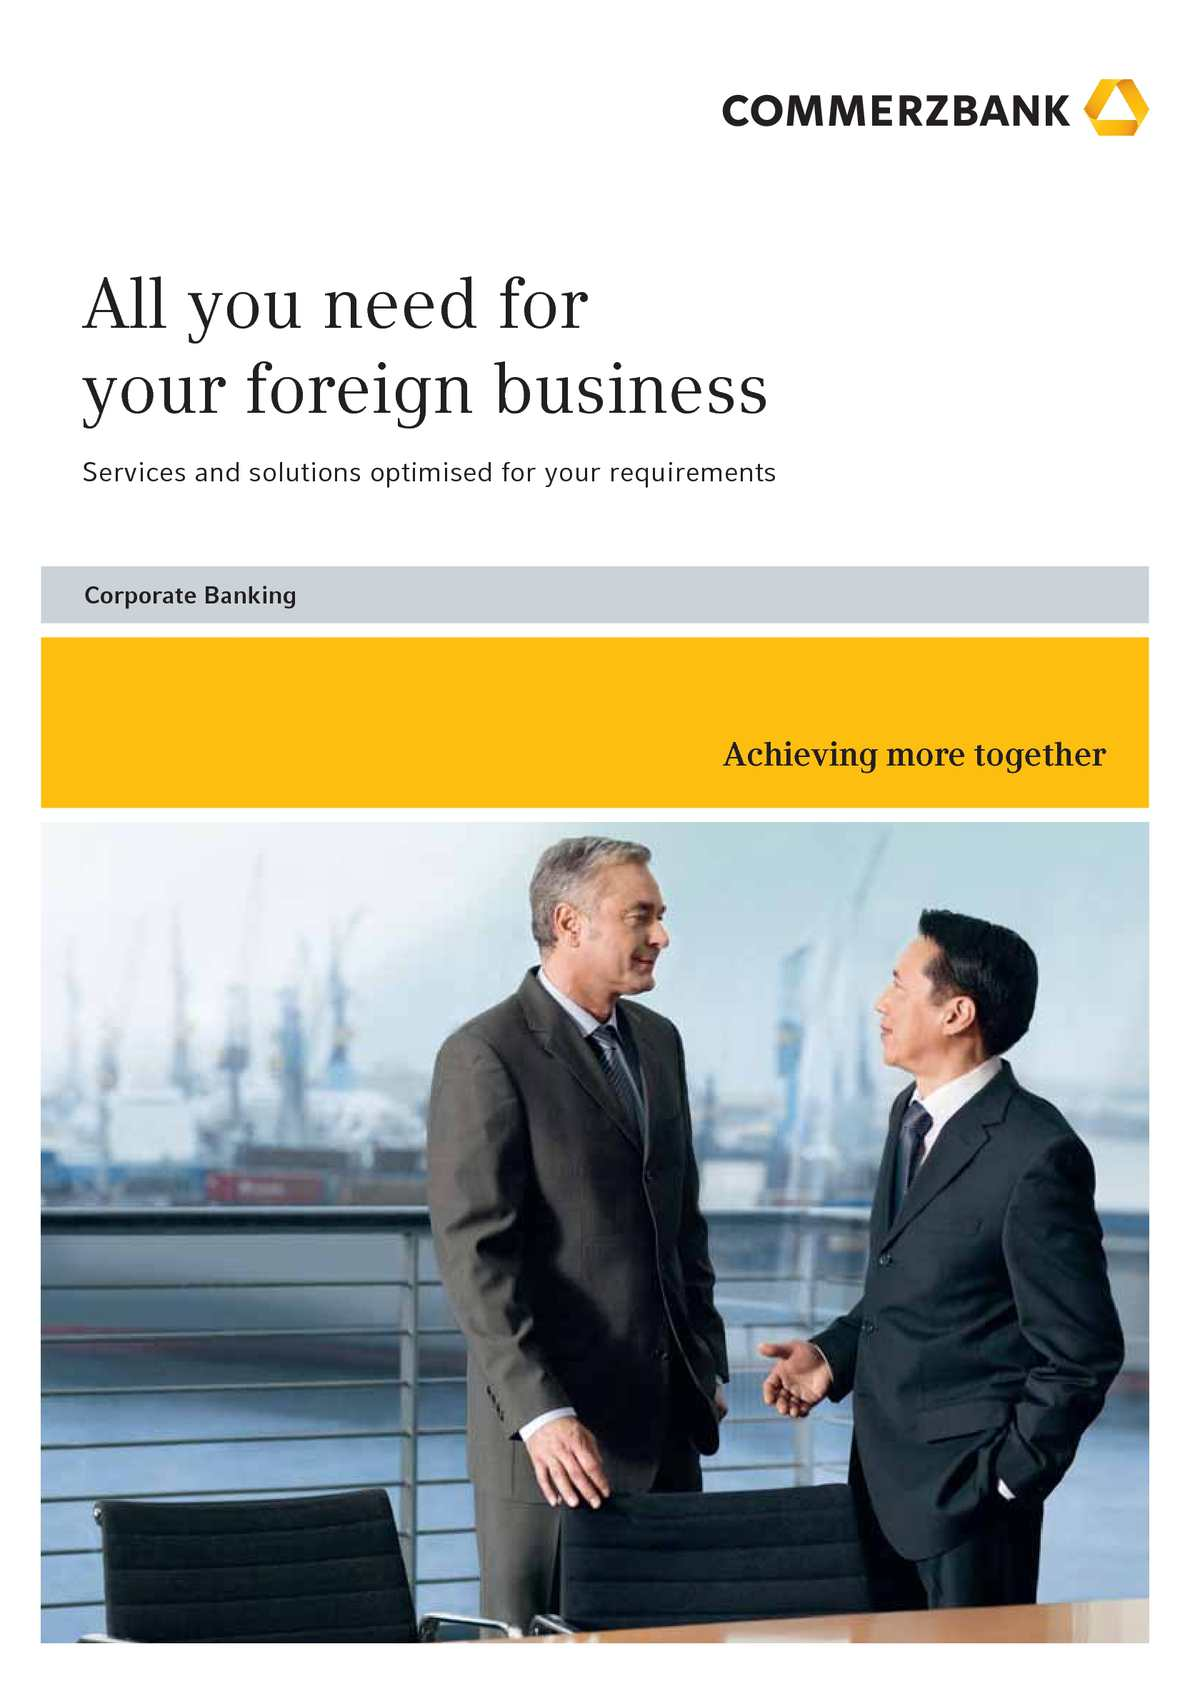 Cash Pool Commerzbank Calaméo Commerzbank All You Need For Your Foreign Business